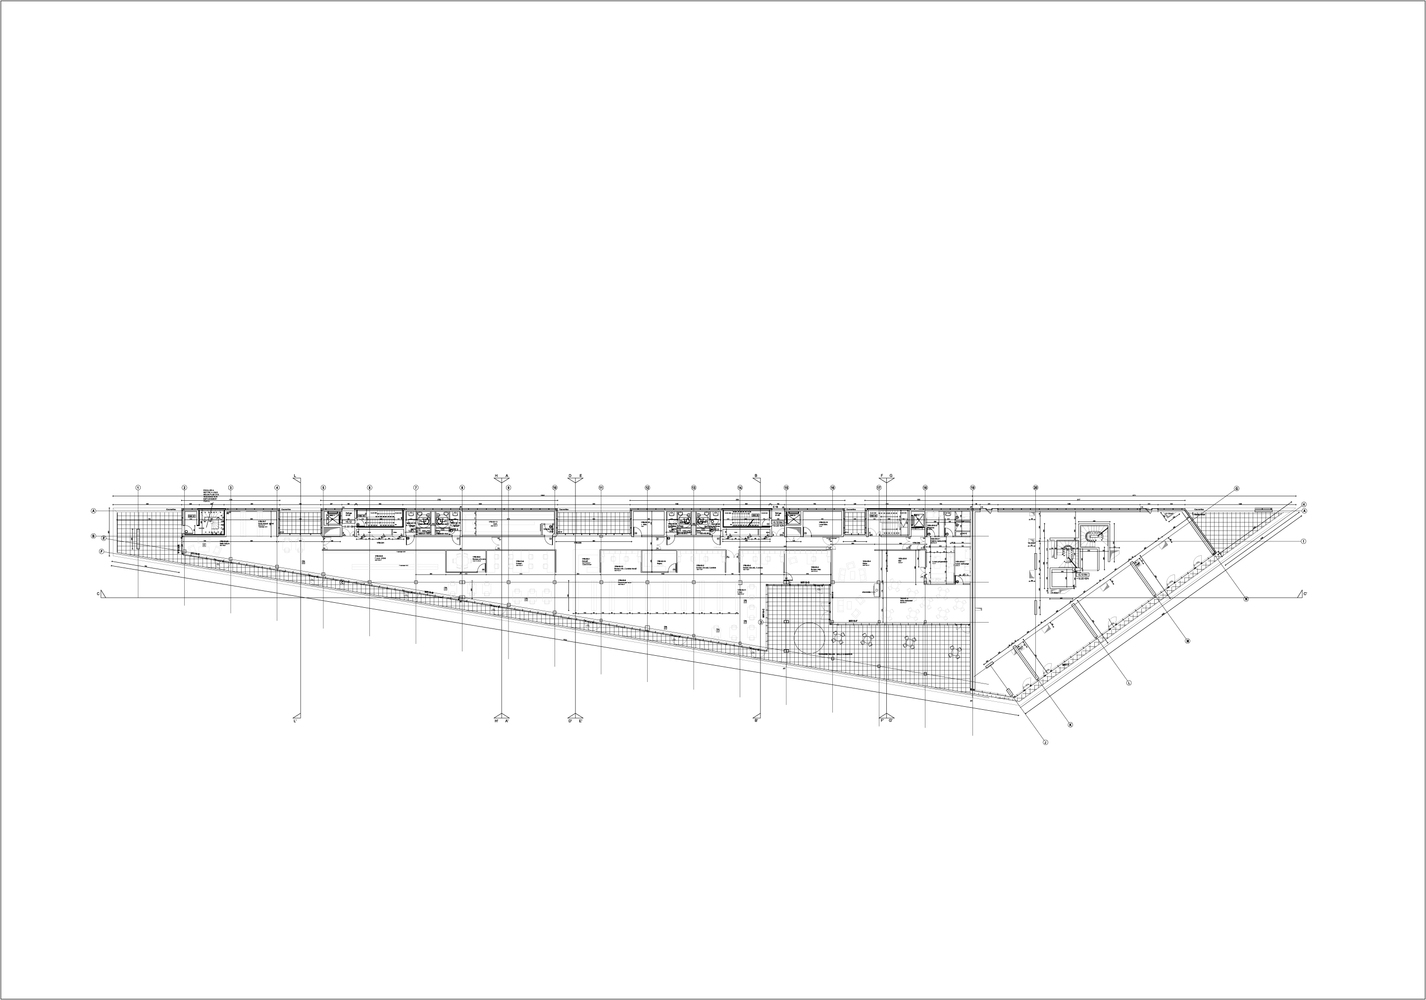 Architectural and urban redevelopment site in Nantes Saupin